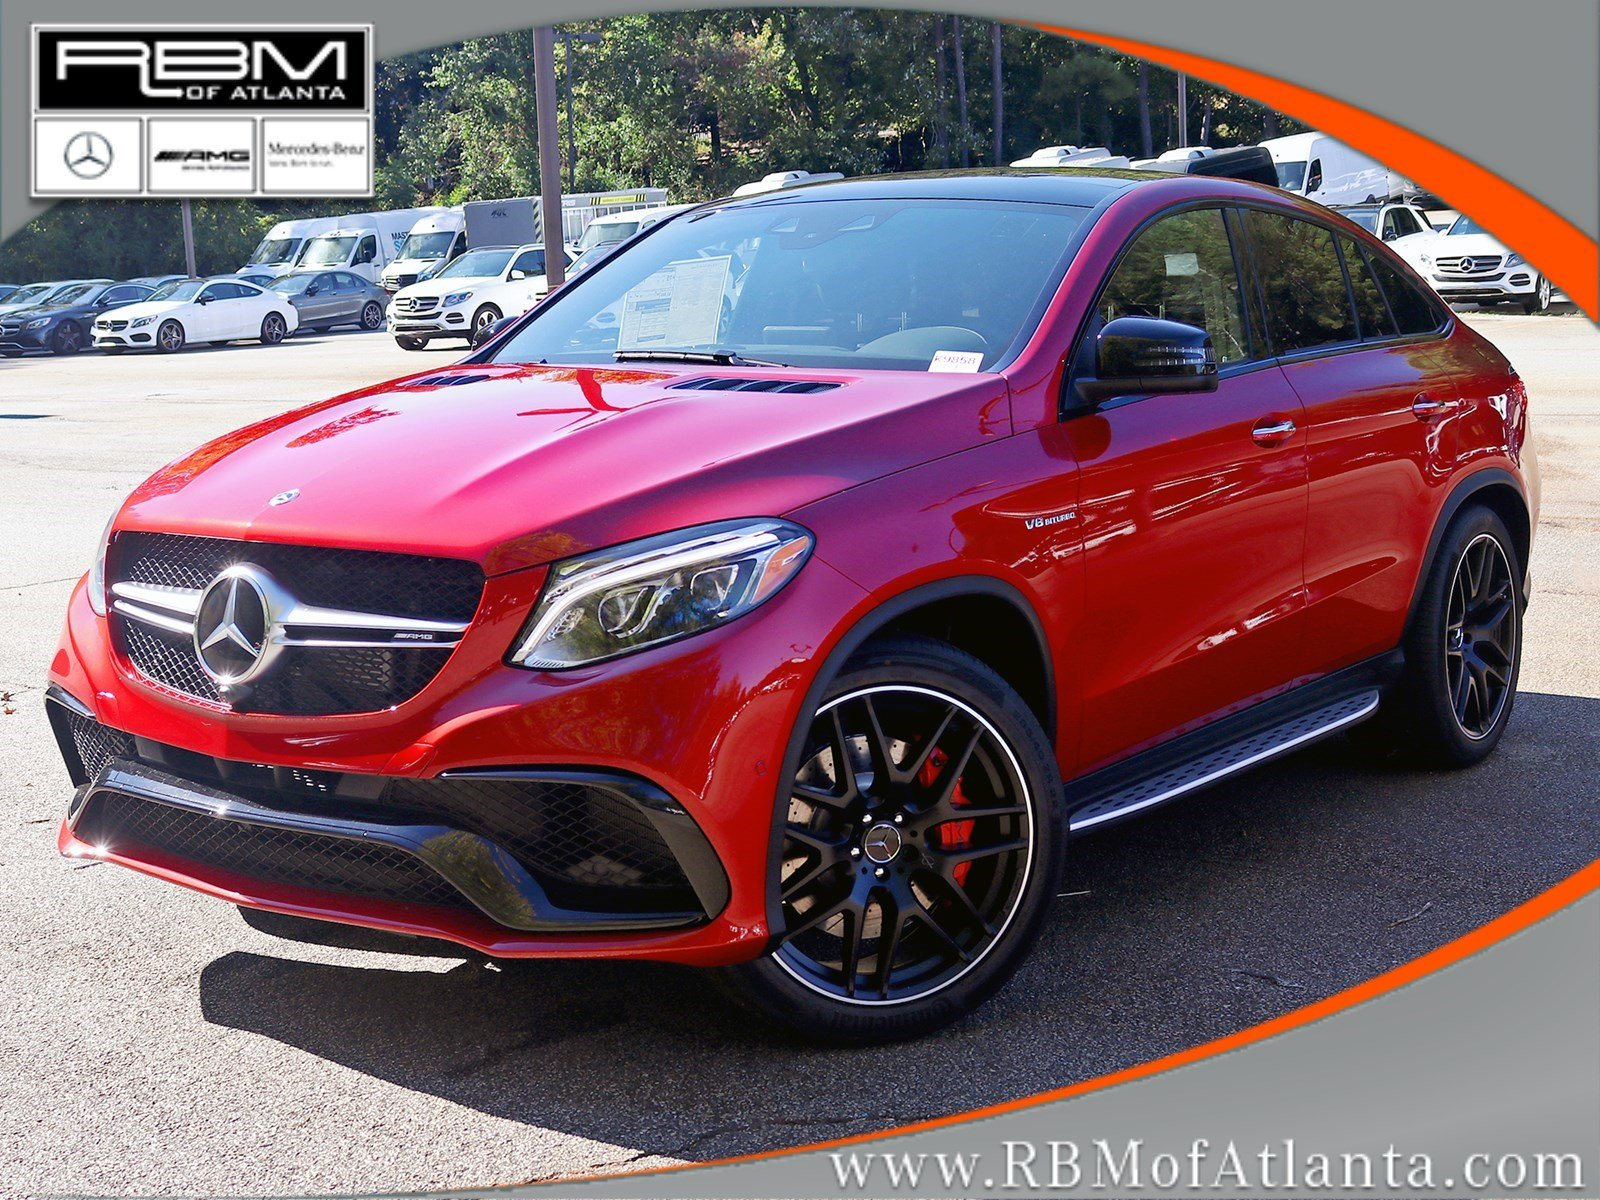 new 2018 mercedes benz gle gle 63 s amg coupe coupe in atlanta k9858 rbm of atlanta. Black Bedroom Furniture Sets. Home Design Ideas